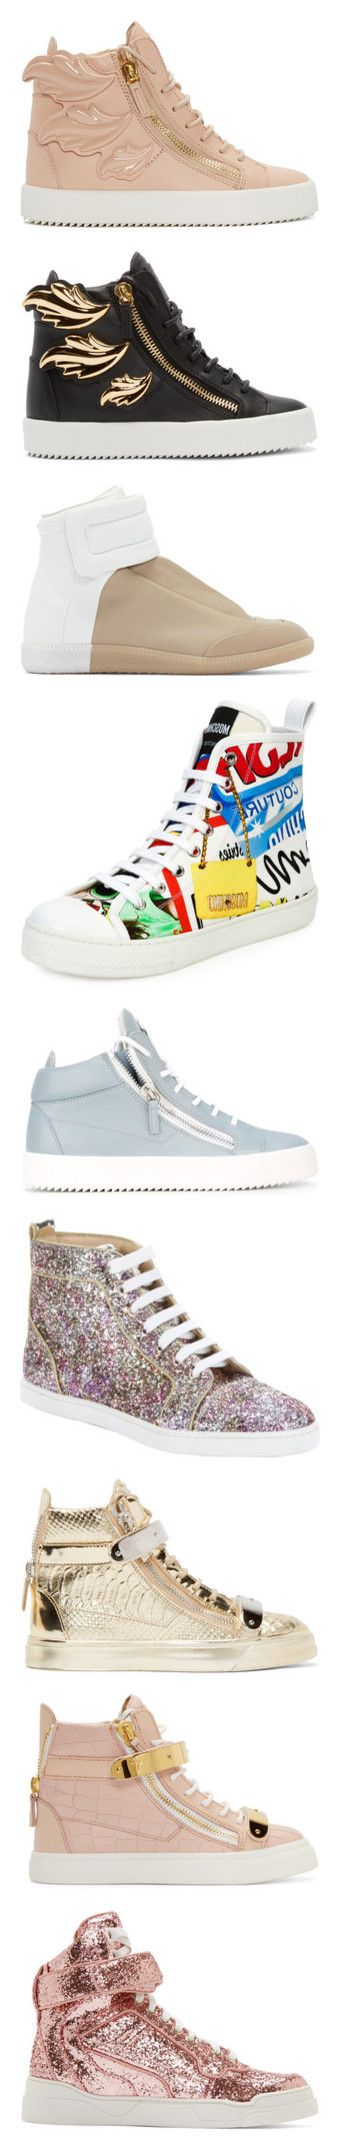 """""""Expensive Shoes"""" by aniahrhichkhidd ❤ liked on Polyvore featuring shoes, sneakers, shell, pink high tops, leather hi top sneakers, high top sneakers, giuseppe zanotti shoes, pink shoes, nero and black high-top sneakers"""